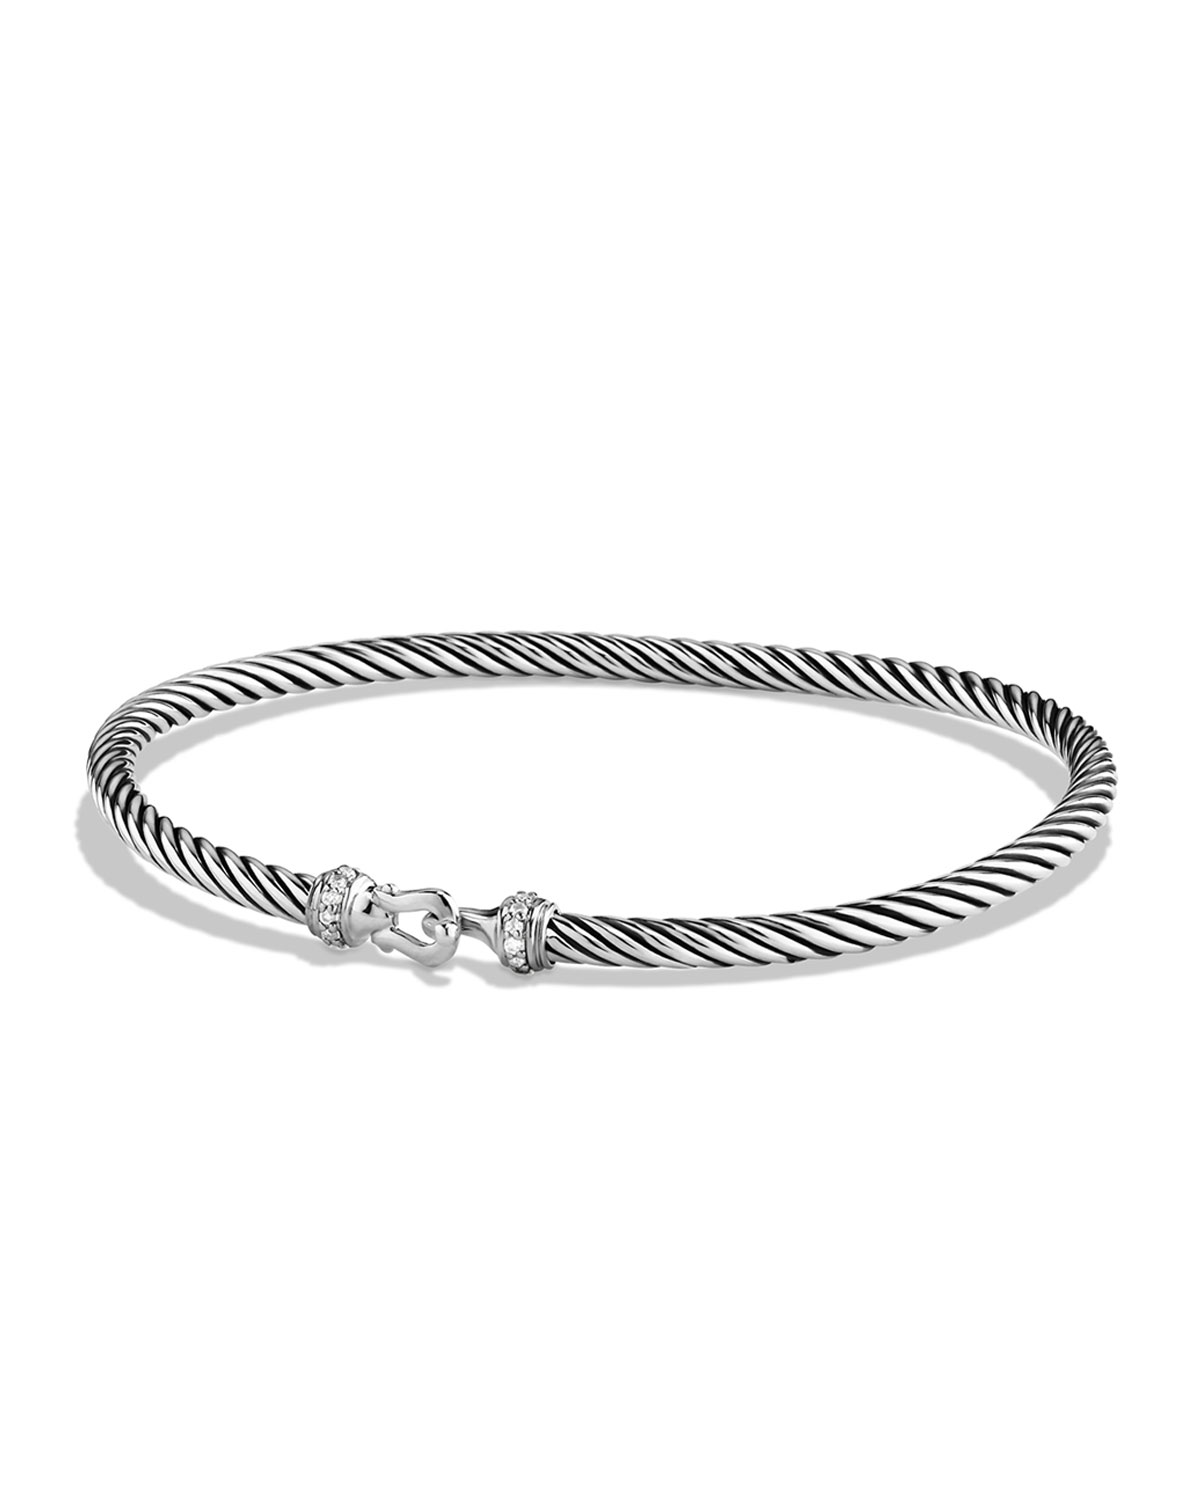 3mm Cable Buckle Bracelet with Diamonds